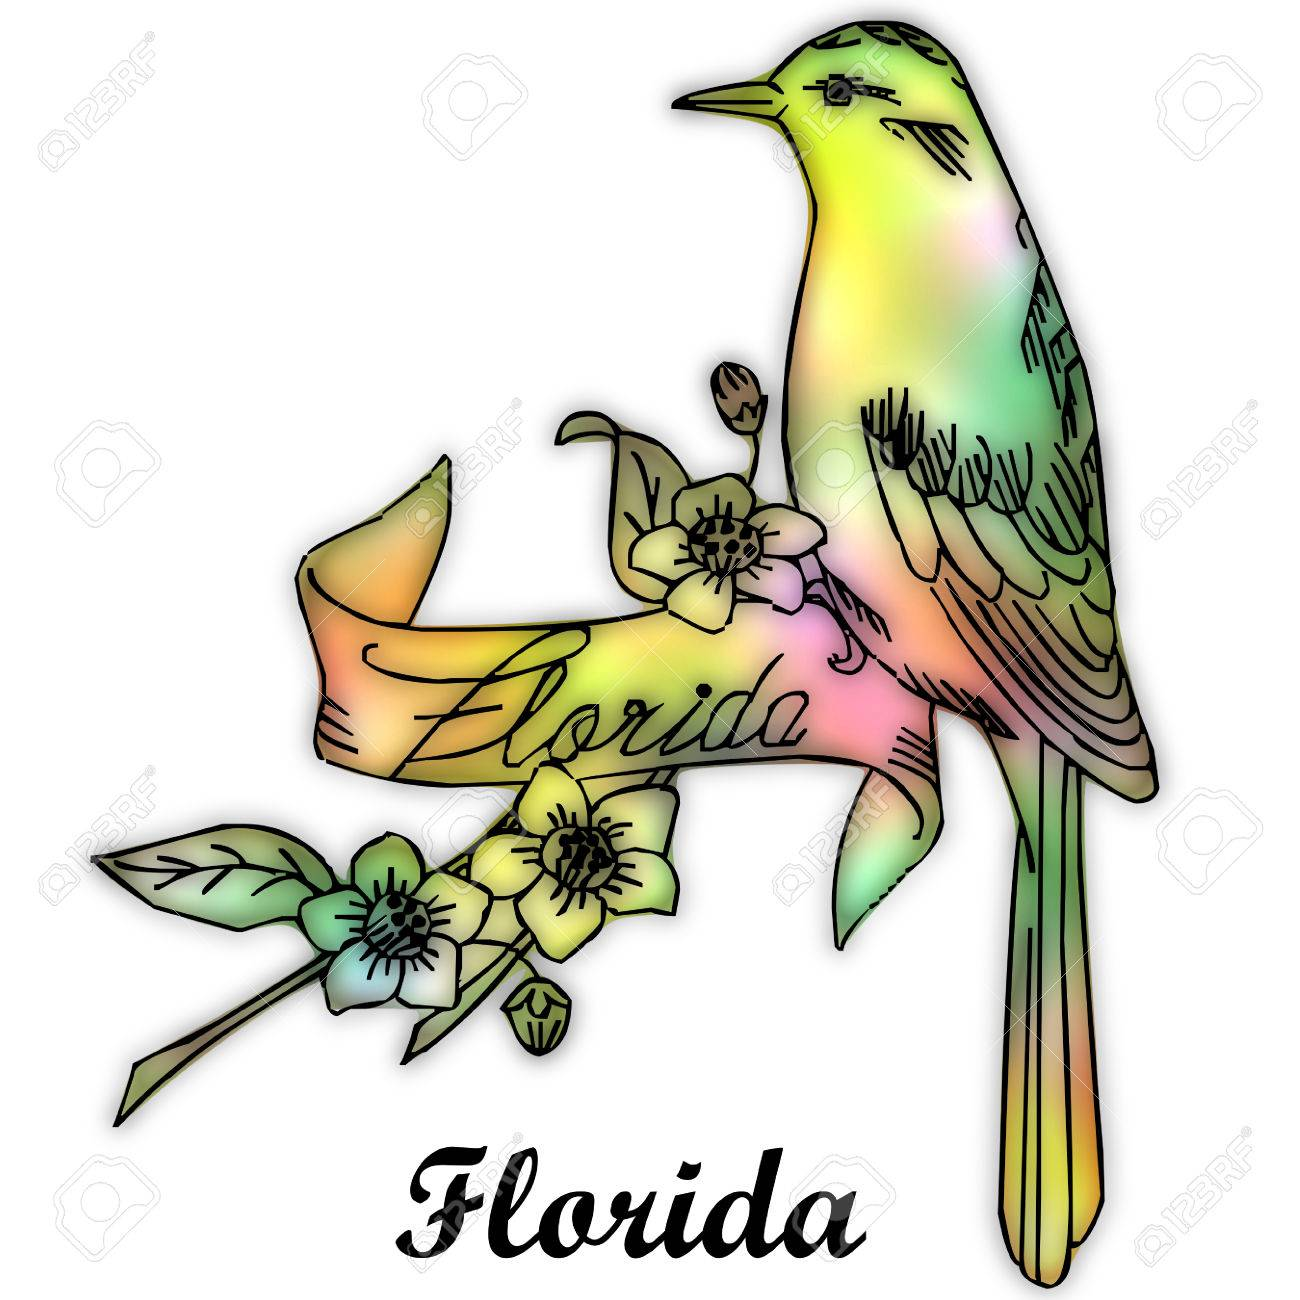 Florida State Bird Stock Photo